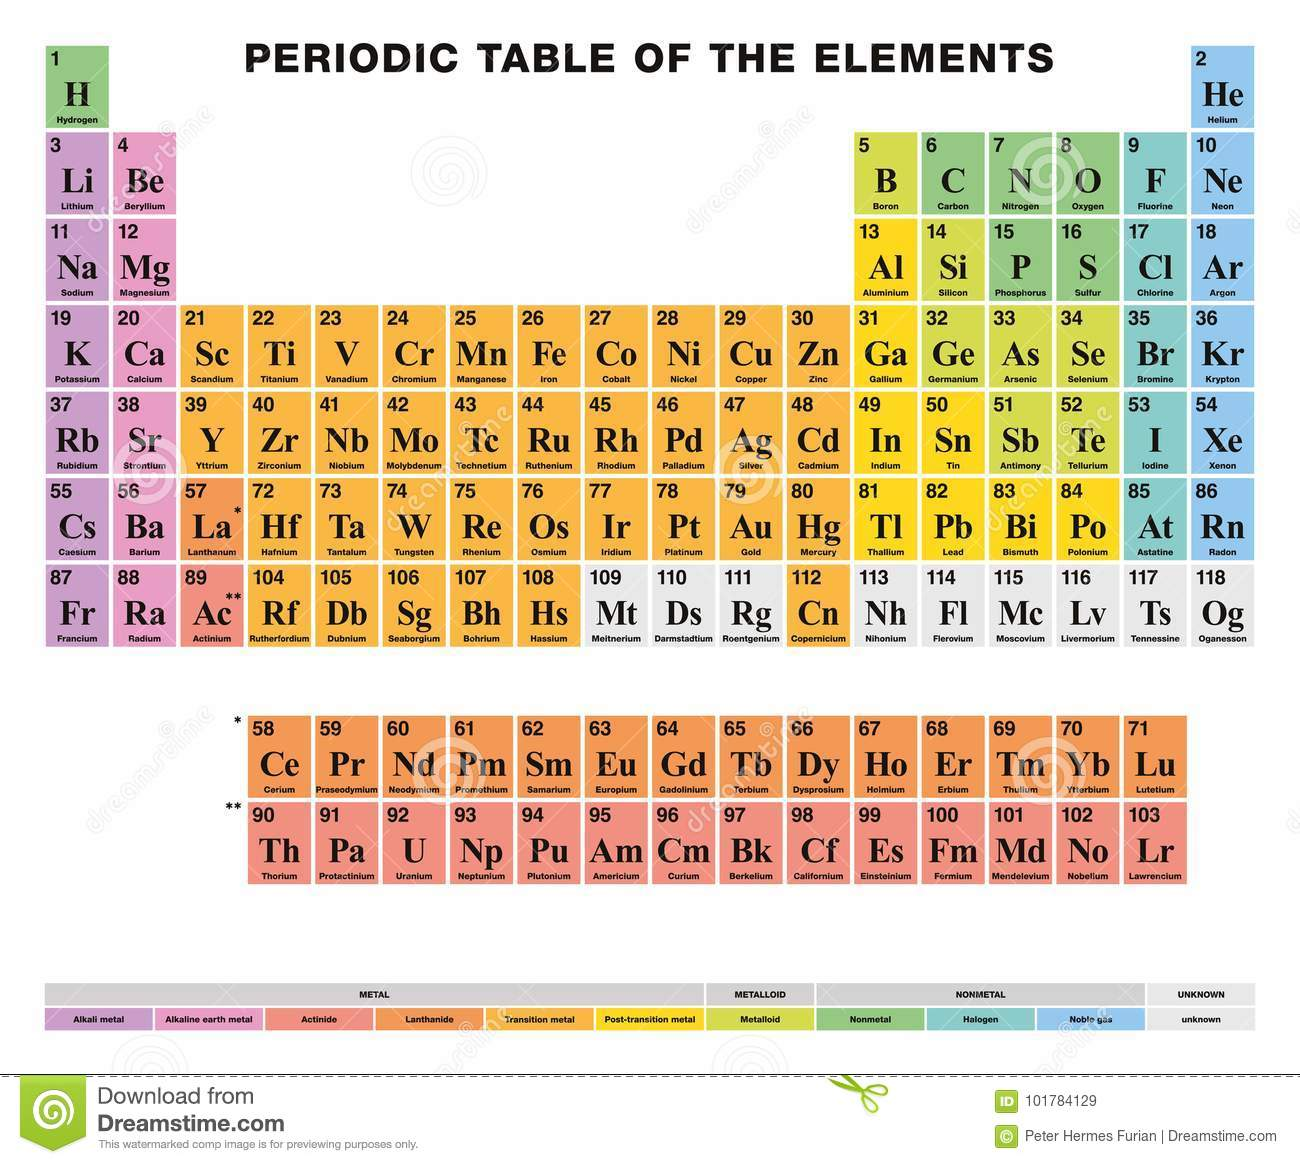 Periodic table of the elements english labeling colored cells periodic table of the elements english labeling colored cells urtaz Image collections